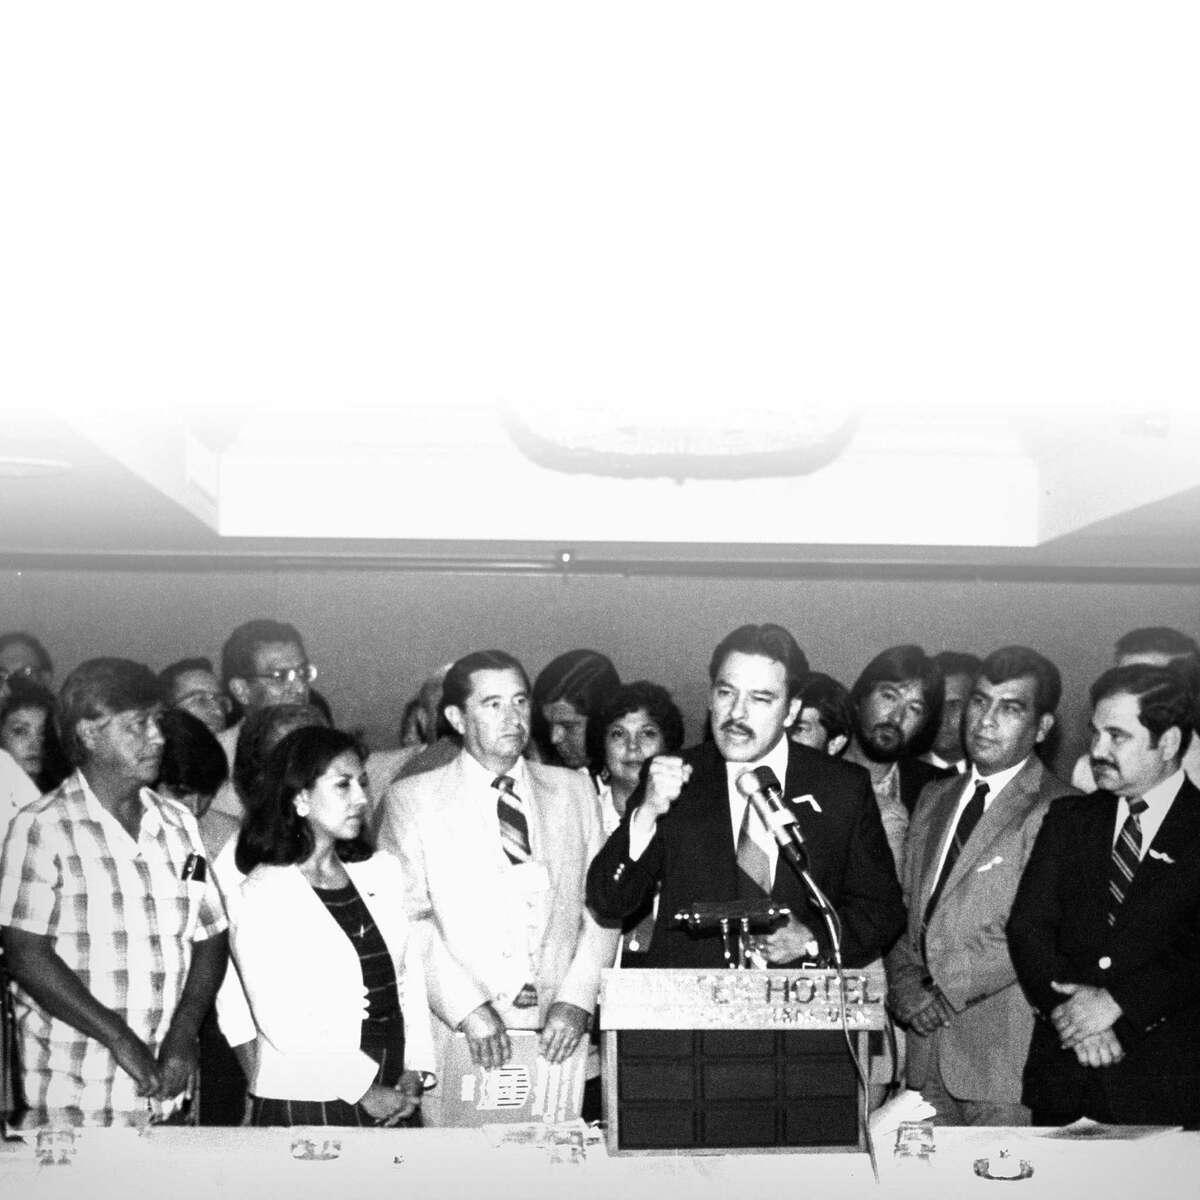 Voters rights activist Willie Velasquez (at podium), who died 20 years ago this week, inspired the creation of the National Alliance of Craftsmen Associations. He'll be honored Monday night at the group's first gala.